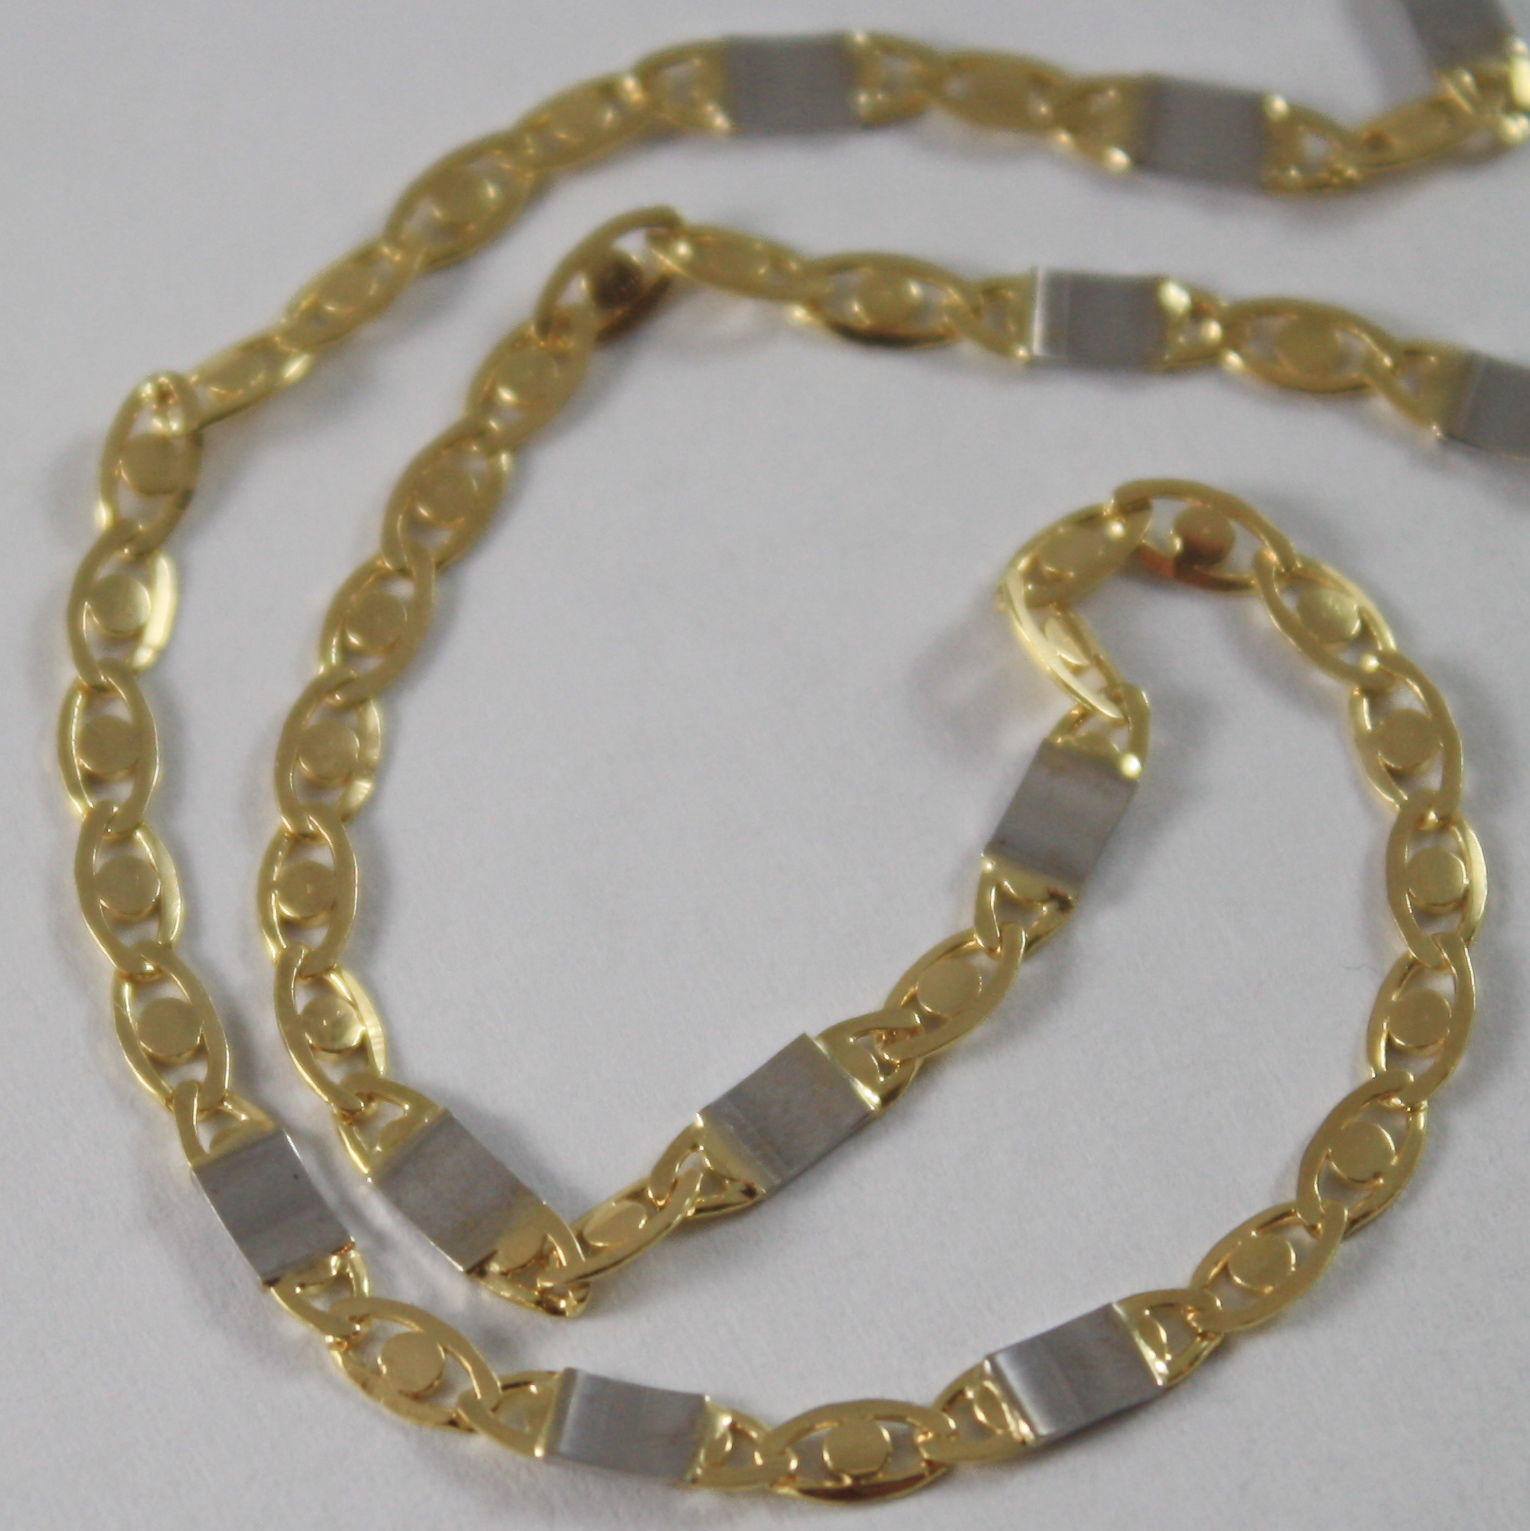 SOLID 18K WHITE & YELLOW GOLD CHAIN, OVAL PLATES MESH 19.68 IN. MADE IN ITALY